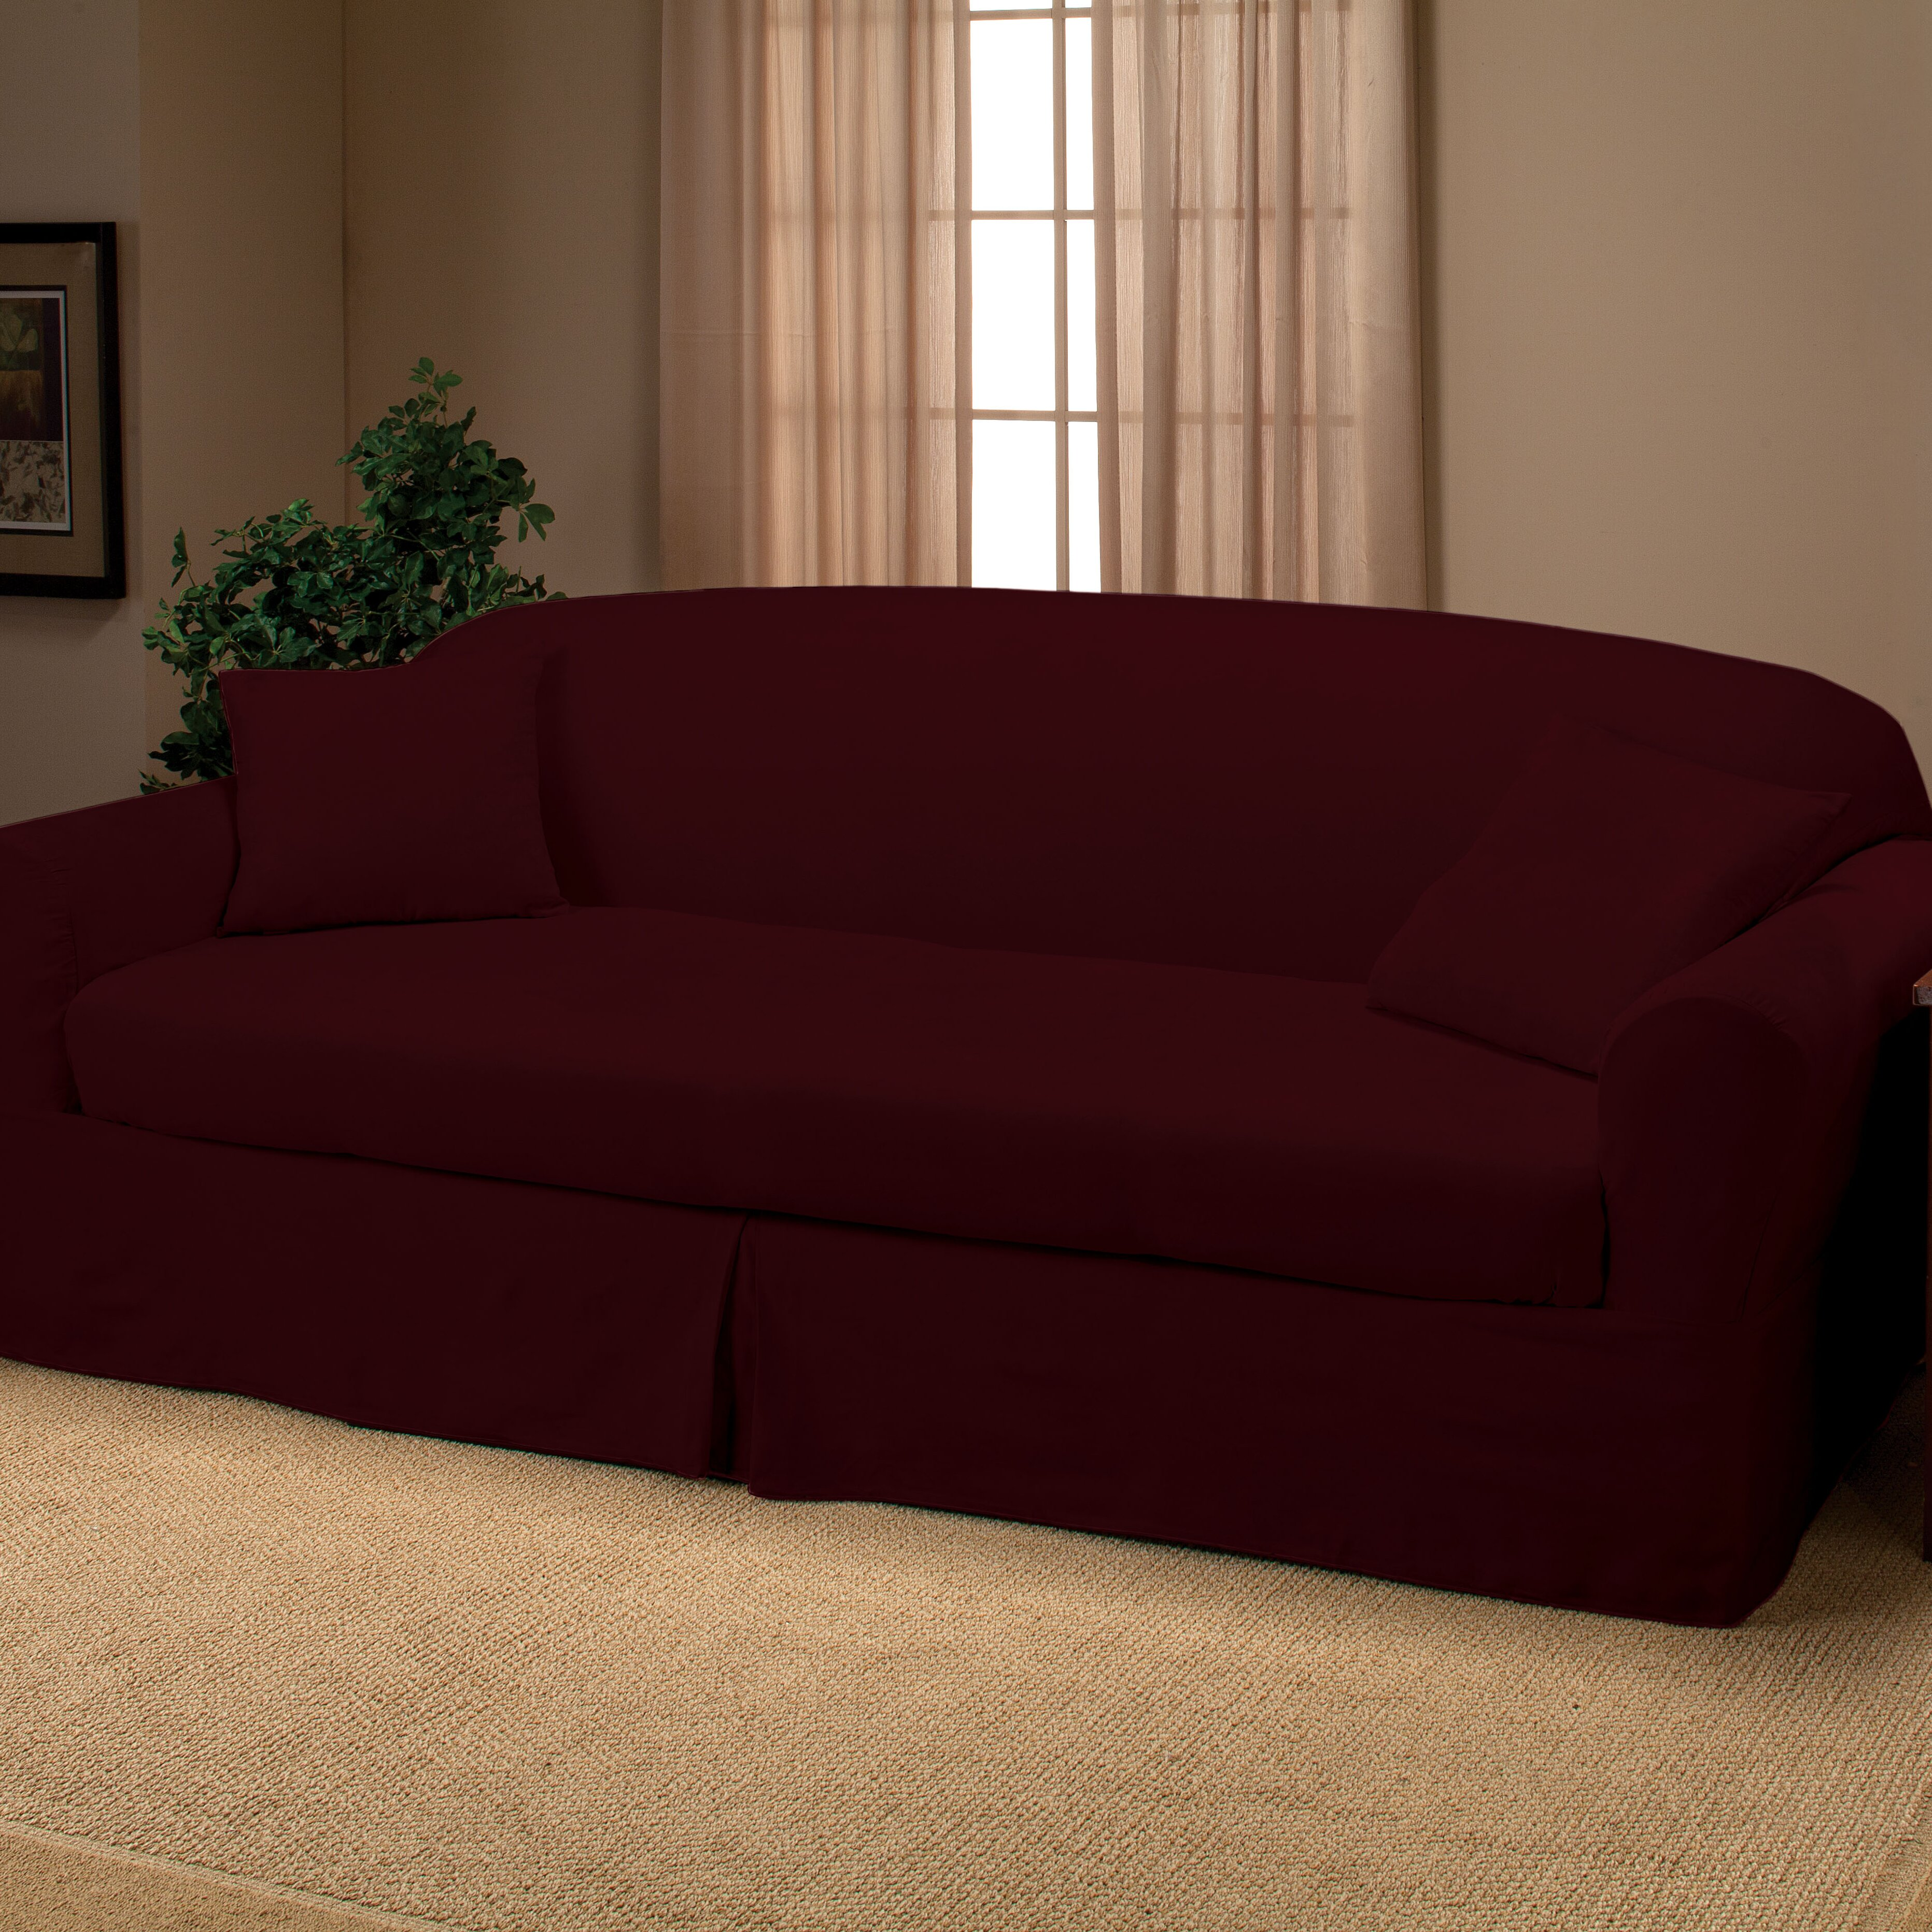 Madison home microsuede 2 piece sofa slipcover reviews for 2 piece sectional sofa slipcover